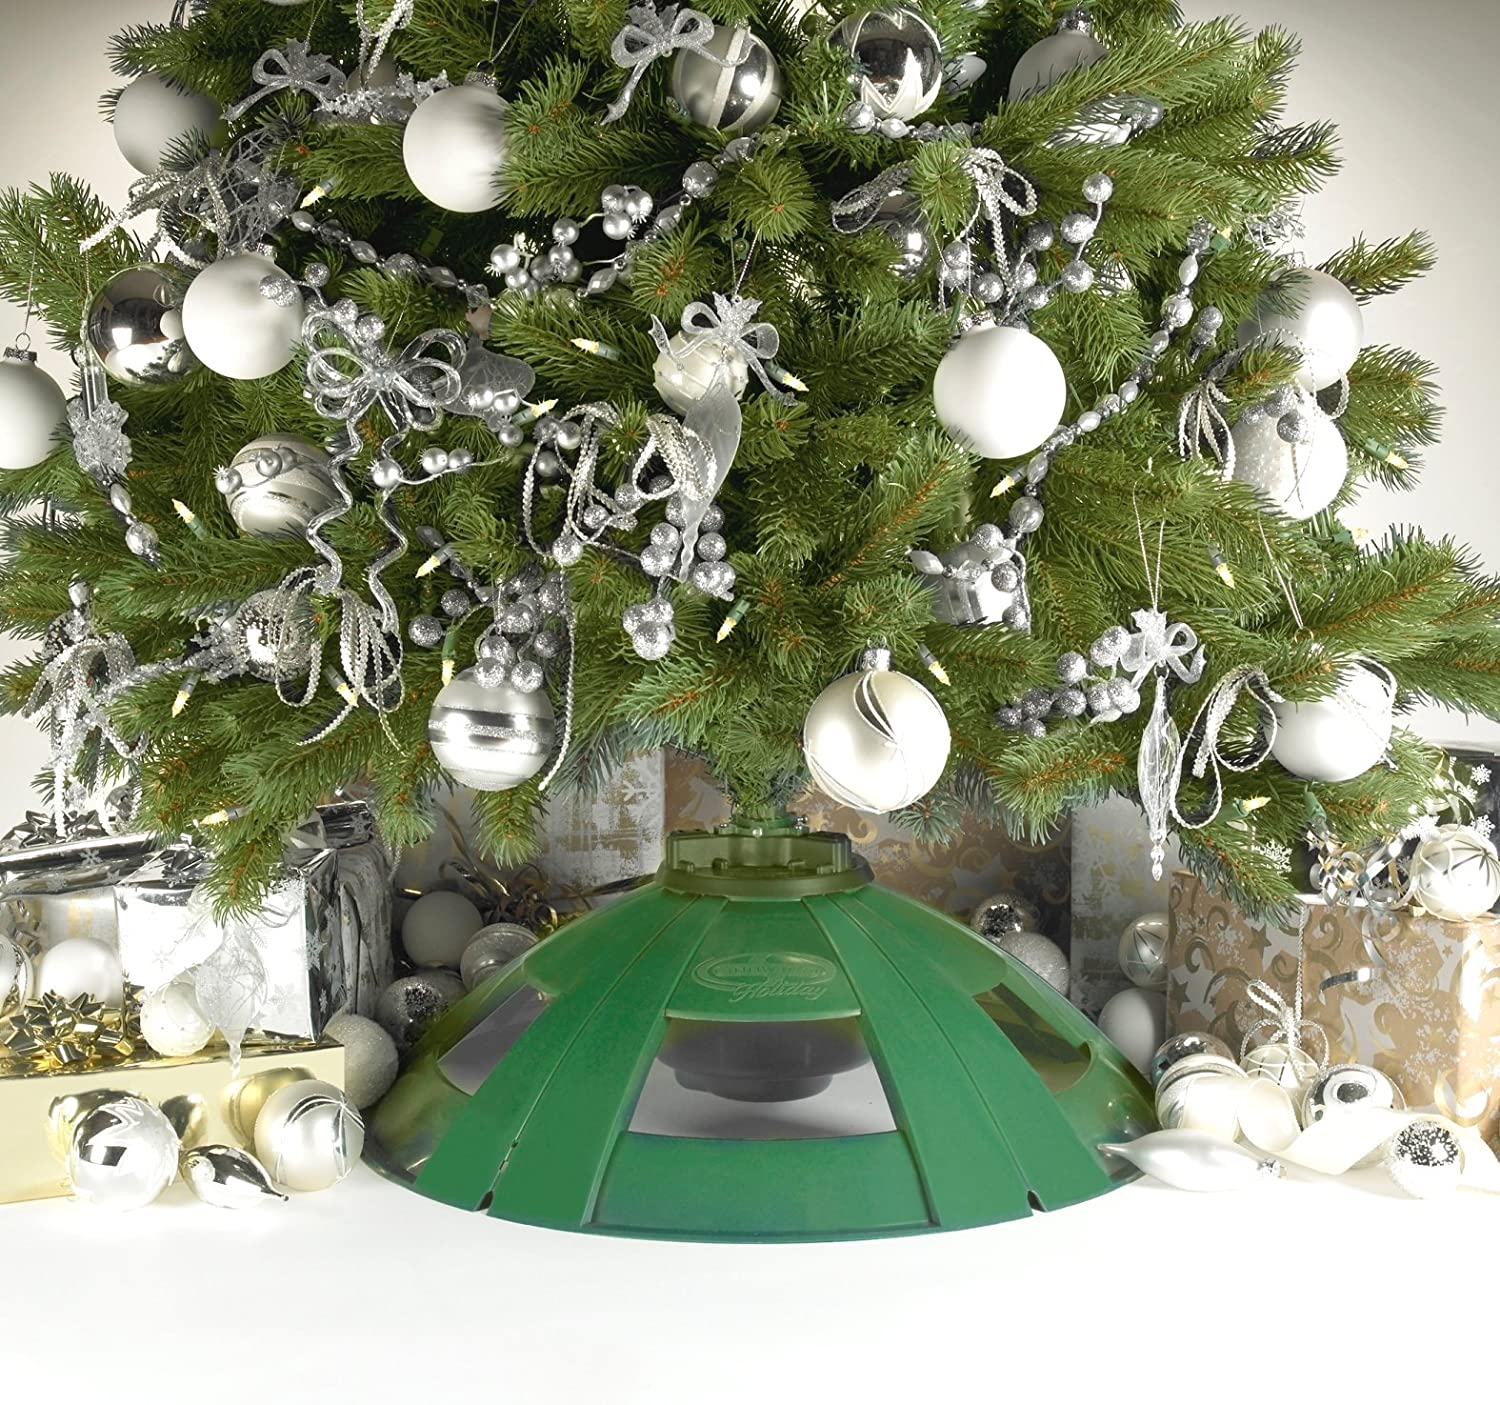 Amazon.com : Snow Joe SJ092M Rotating Artificial Christmas Tree ...